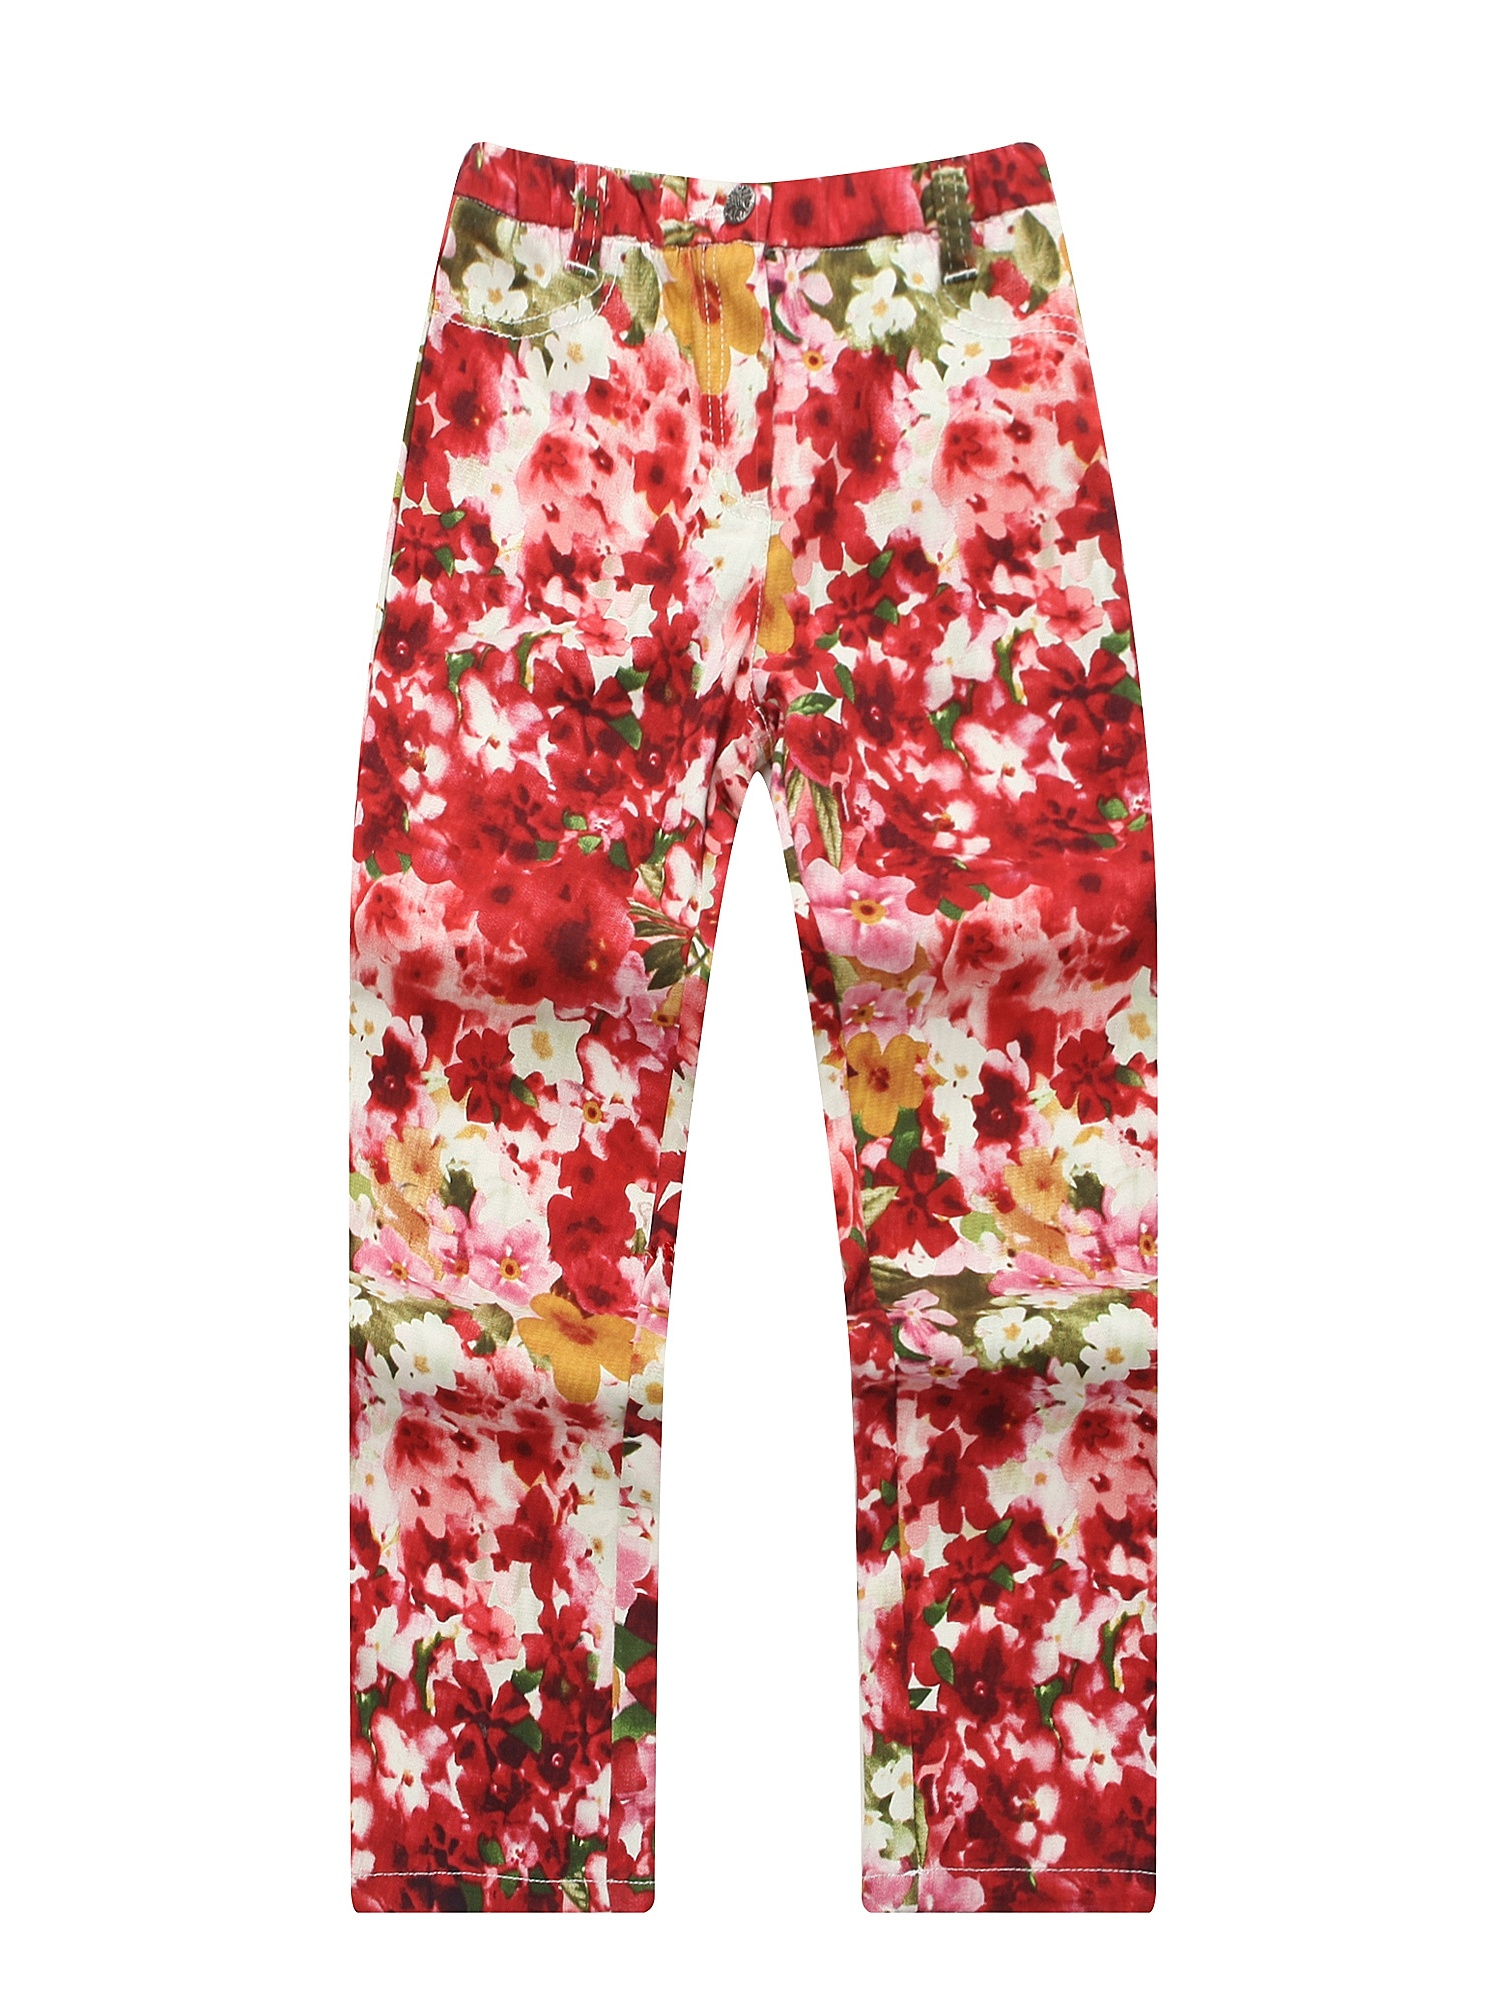 Richie House Girls' Flower Printed Trousers with Zip Fly and Snap Closure RH1186